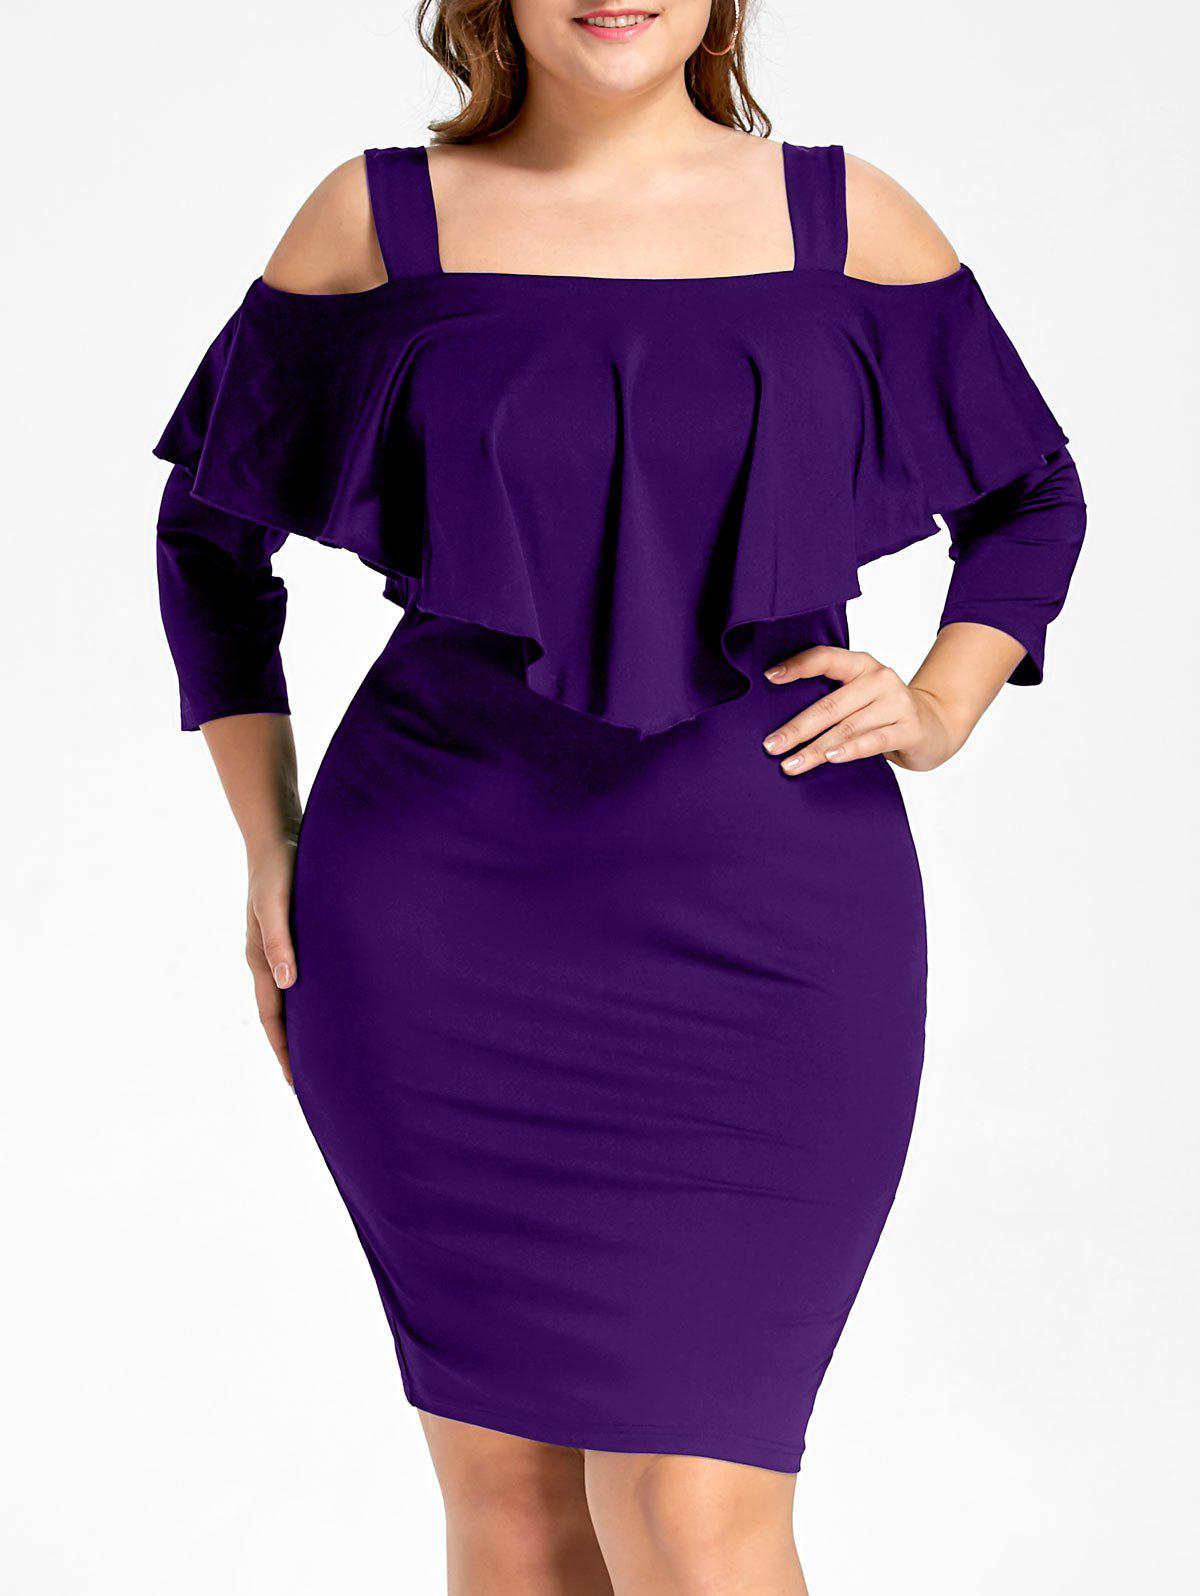 Plus Size Overlay Cold Shoulder Fitted DressWOMEN<br><br>Size: XL; Color: PURPLE; Style: Brief; Material: Polyester; Silhouette: Sheath; Dresses Length: Knee-Length; Neckline: Square Collar; Sleeve Length: 3/4 Length Sleeves; Pattern Type: Solid Color; With Belt: No; Season: Fall,Spring; Weight: 0.3700kg; Package Contents: 1 x Dress;